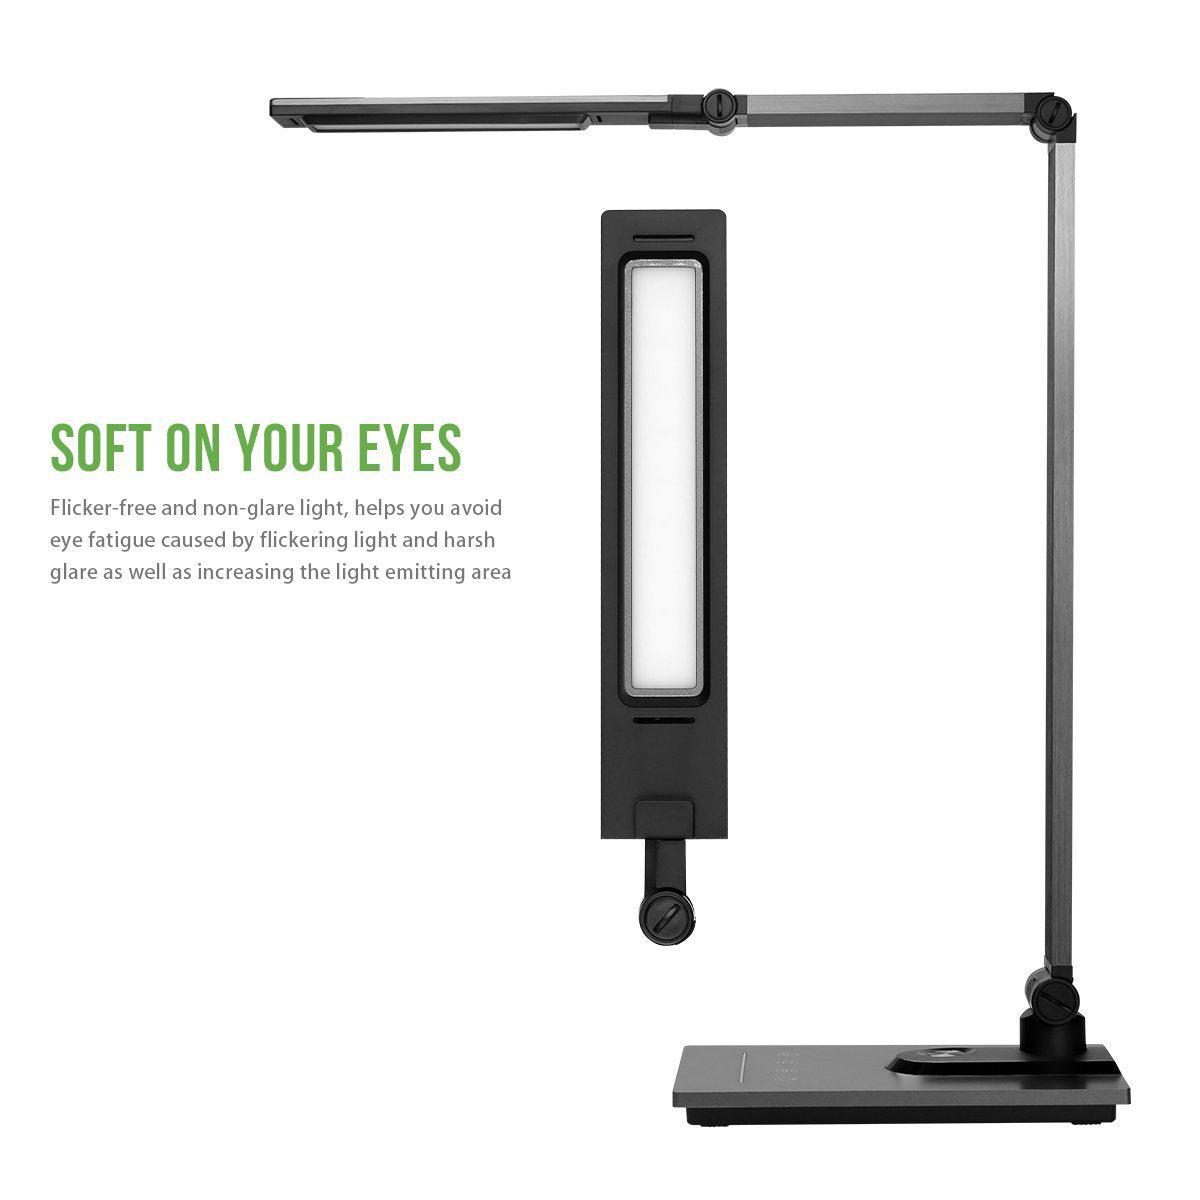 Softech - Natural Light Smart LED Lamp with Stylish Aluminum Alloy Lamps